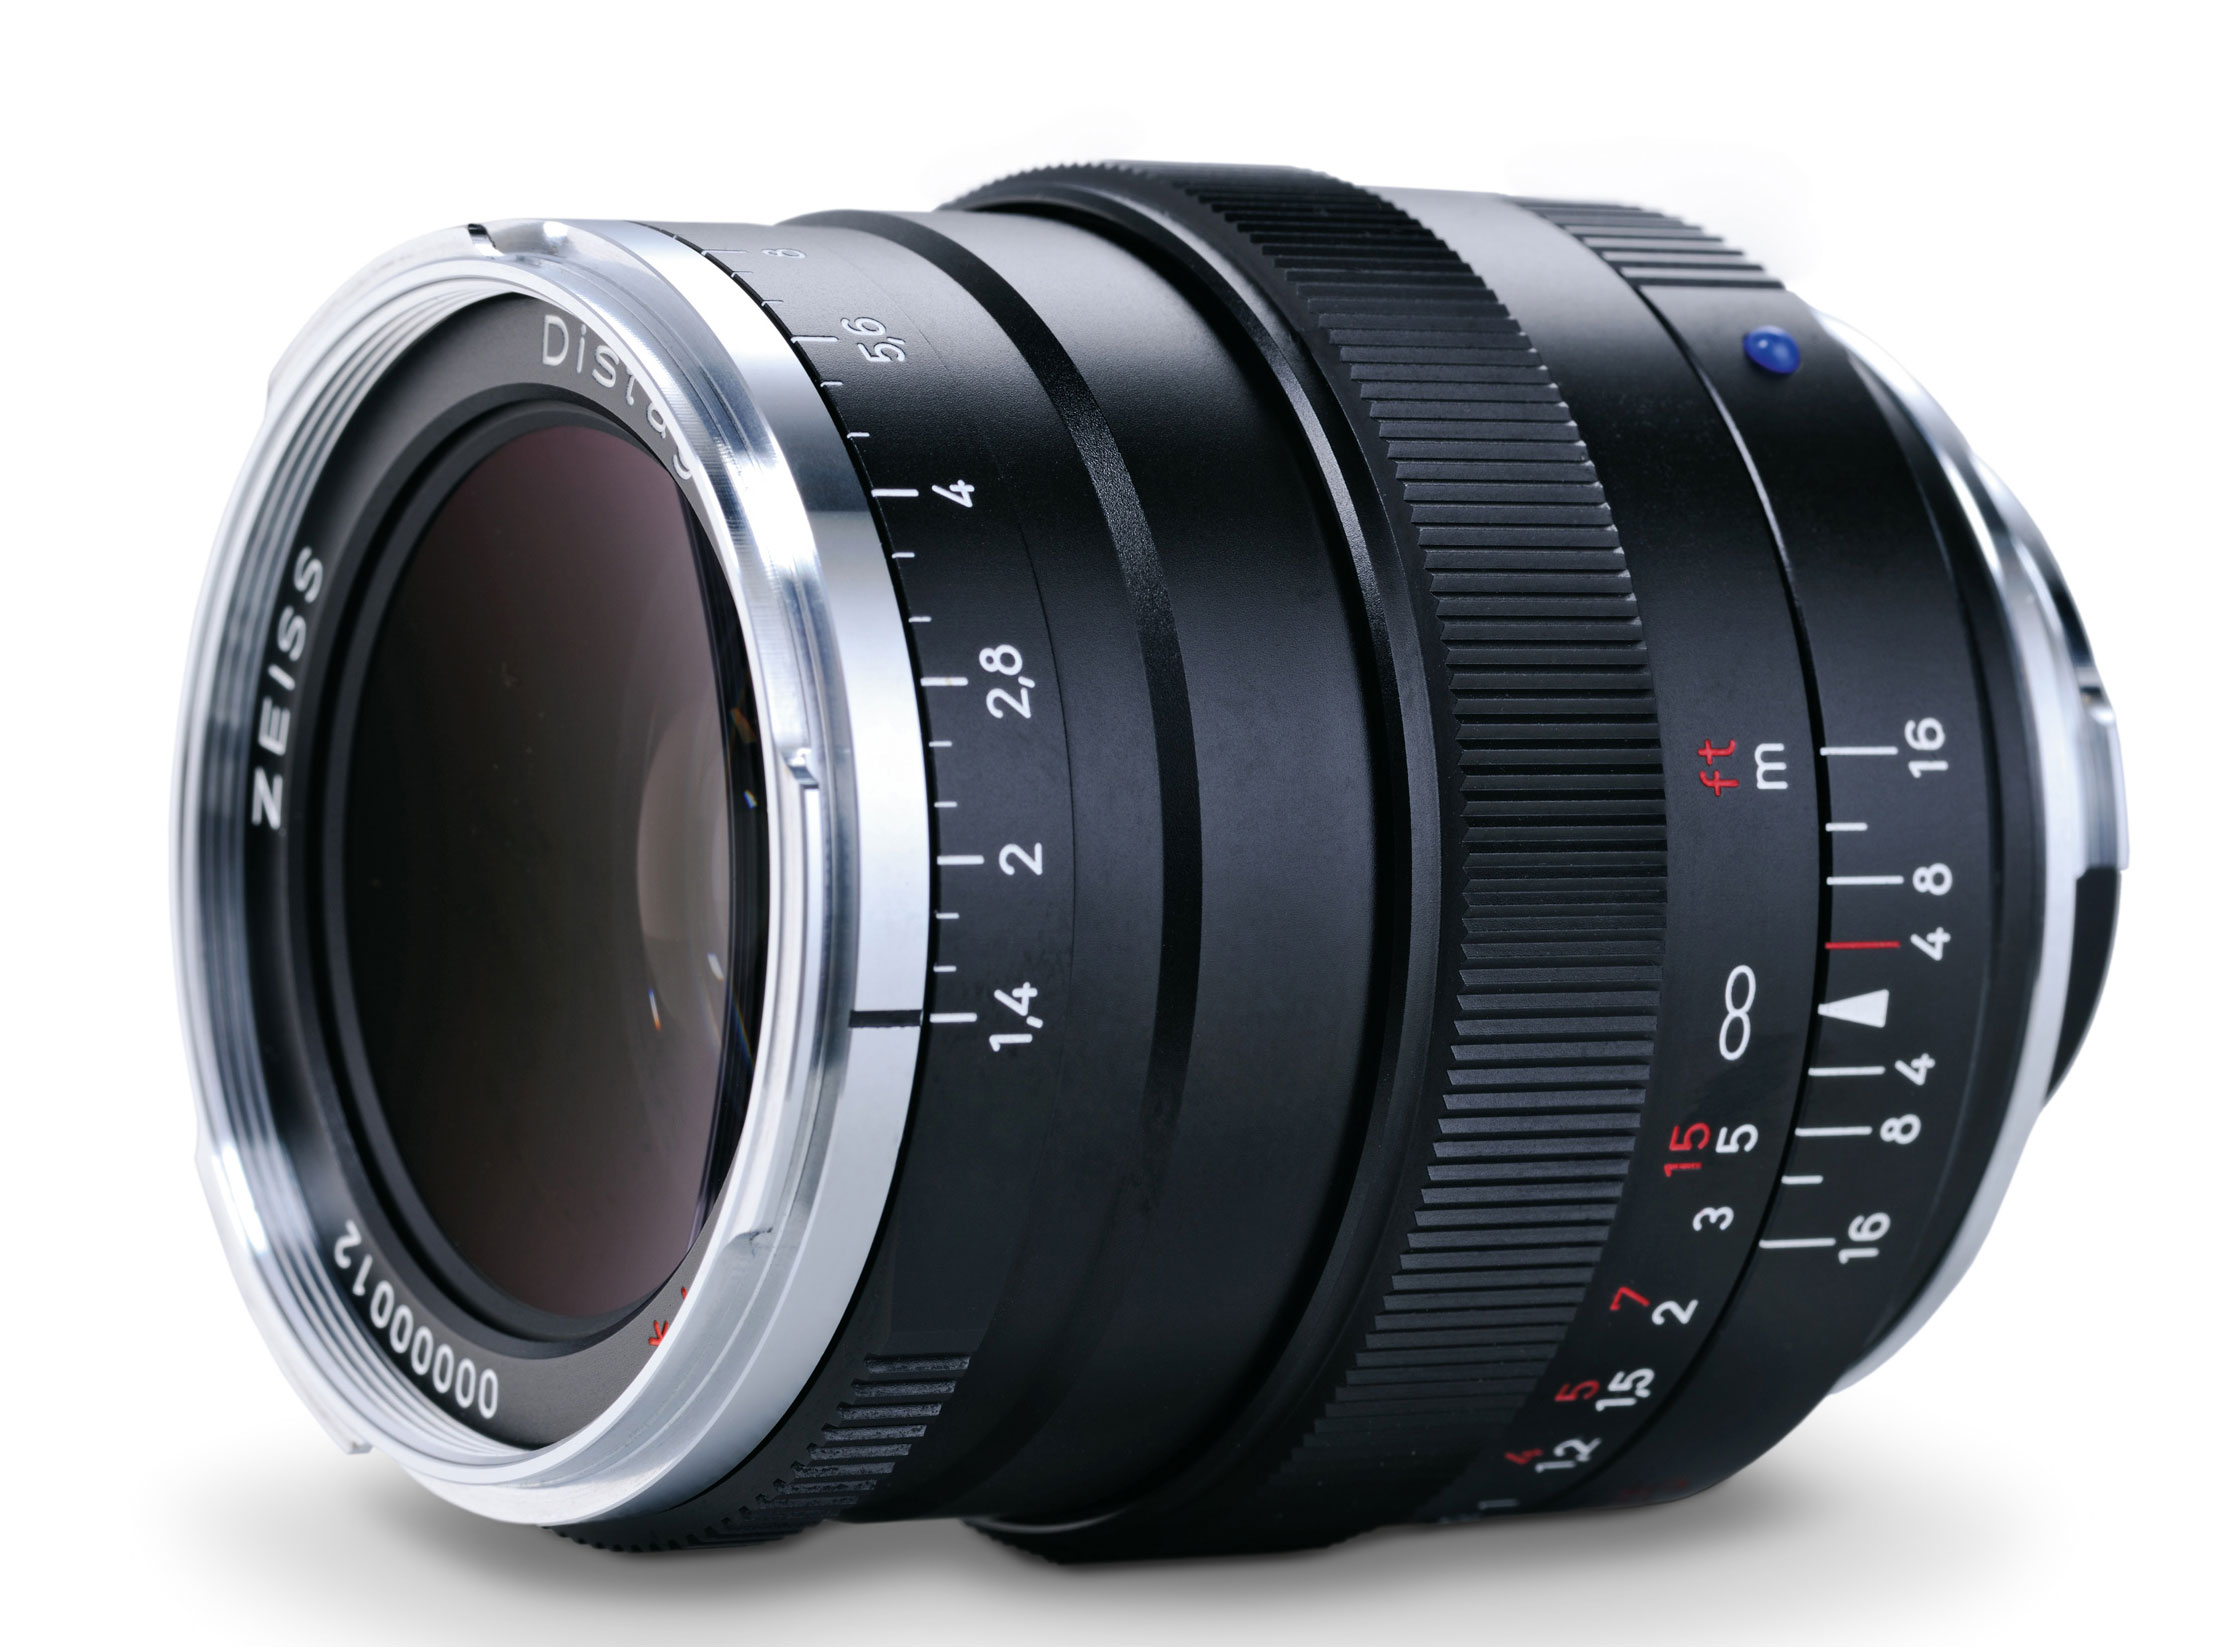 Carl Zeiss 1.4/35mm ZE